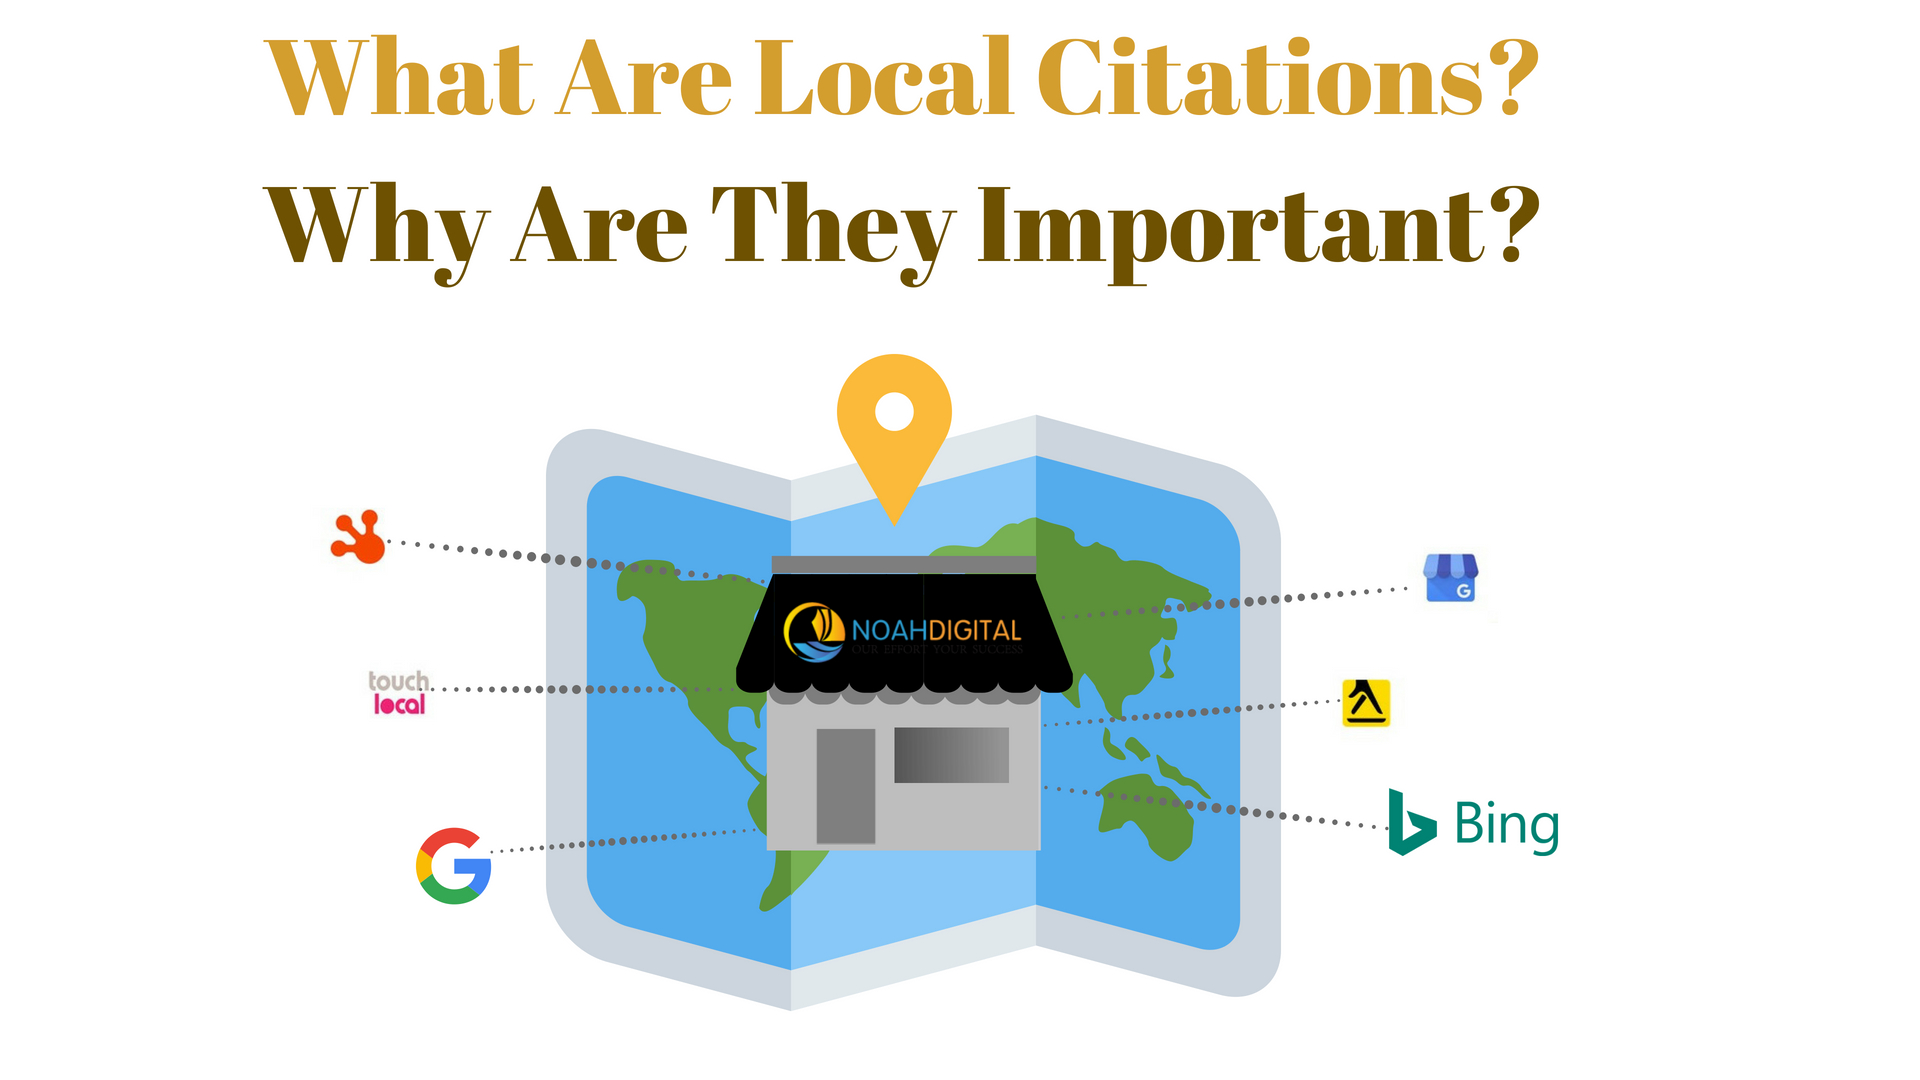 What are local citations and why do they matter